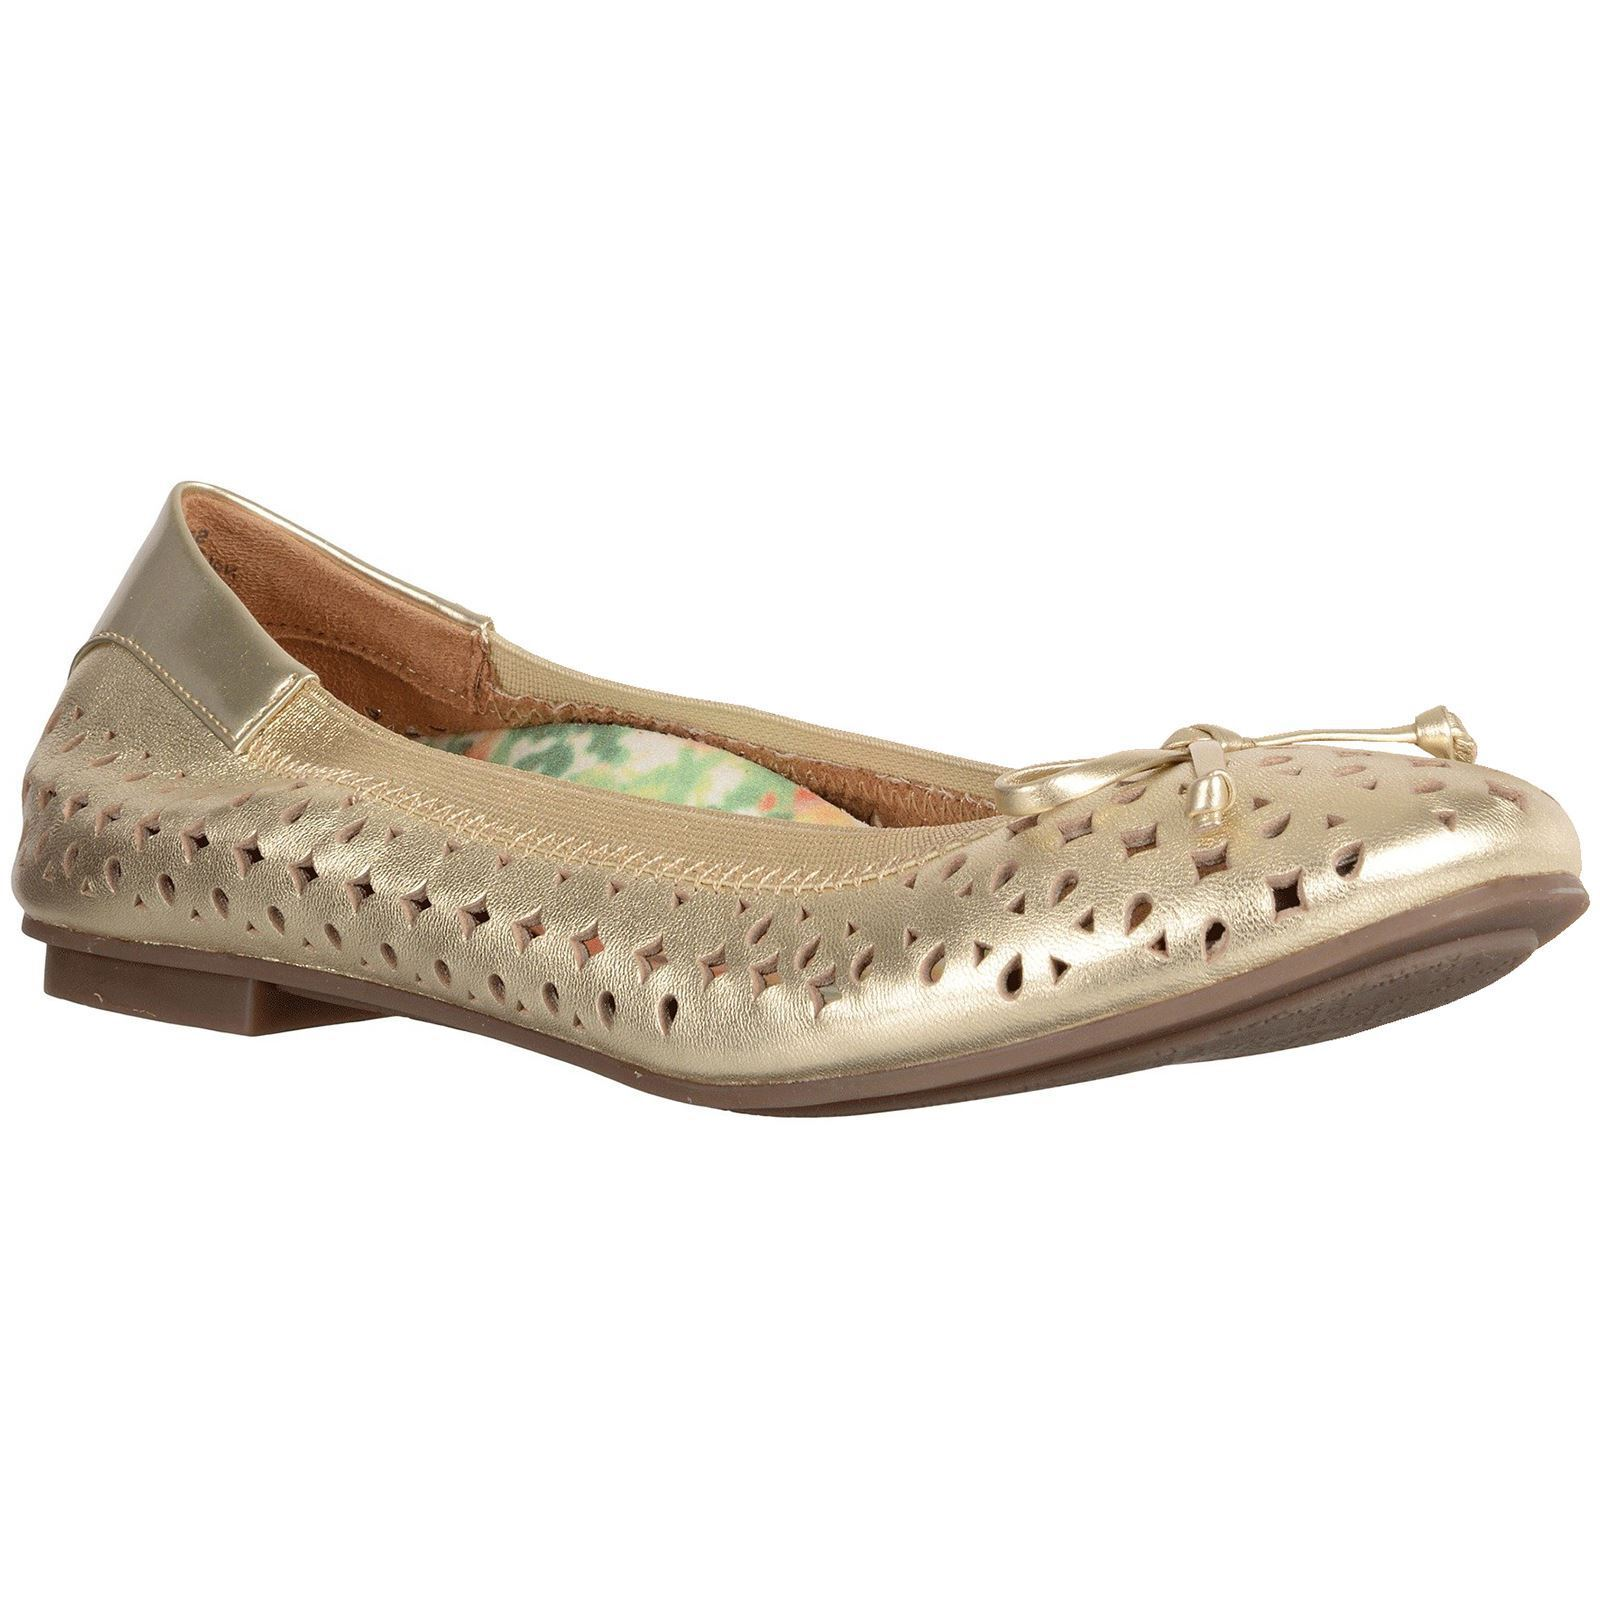 Vionic 359 Surin Spark Gold Womens Leather Ballet Flats Ballerinas Shoes